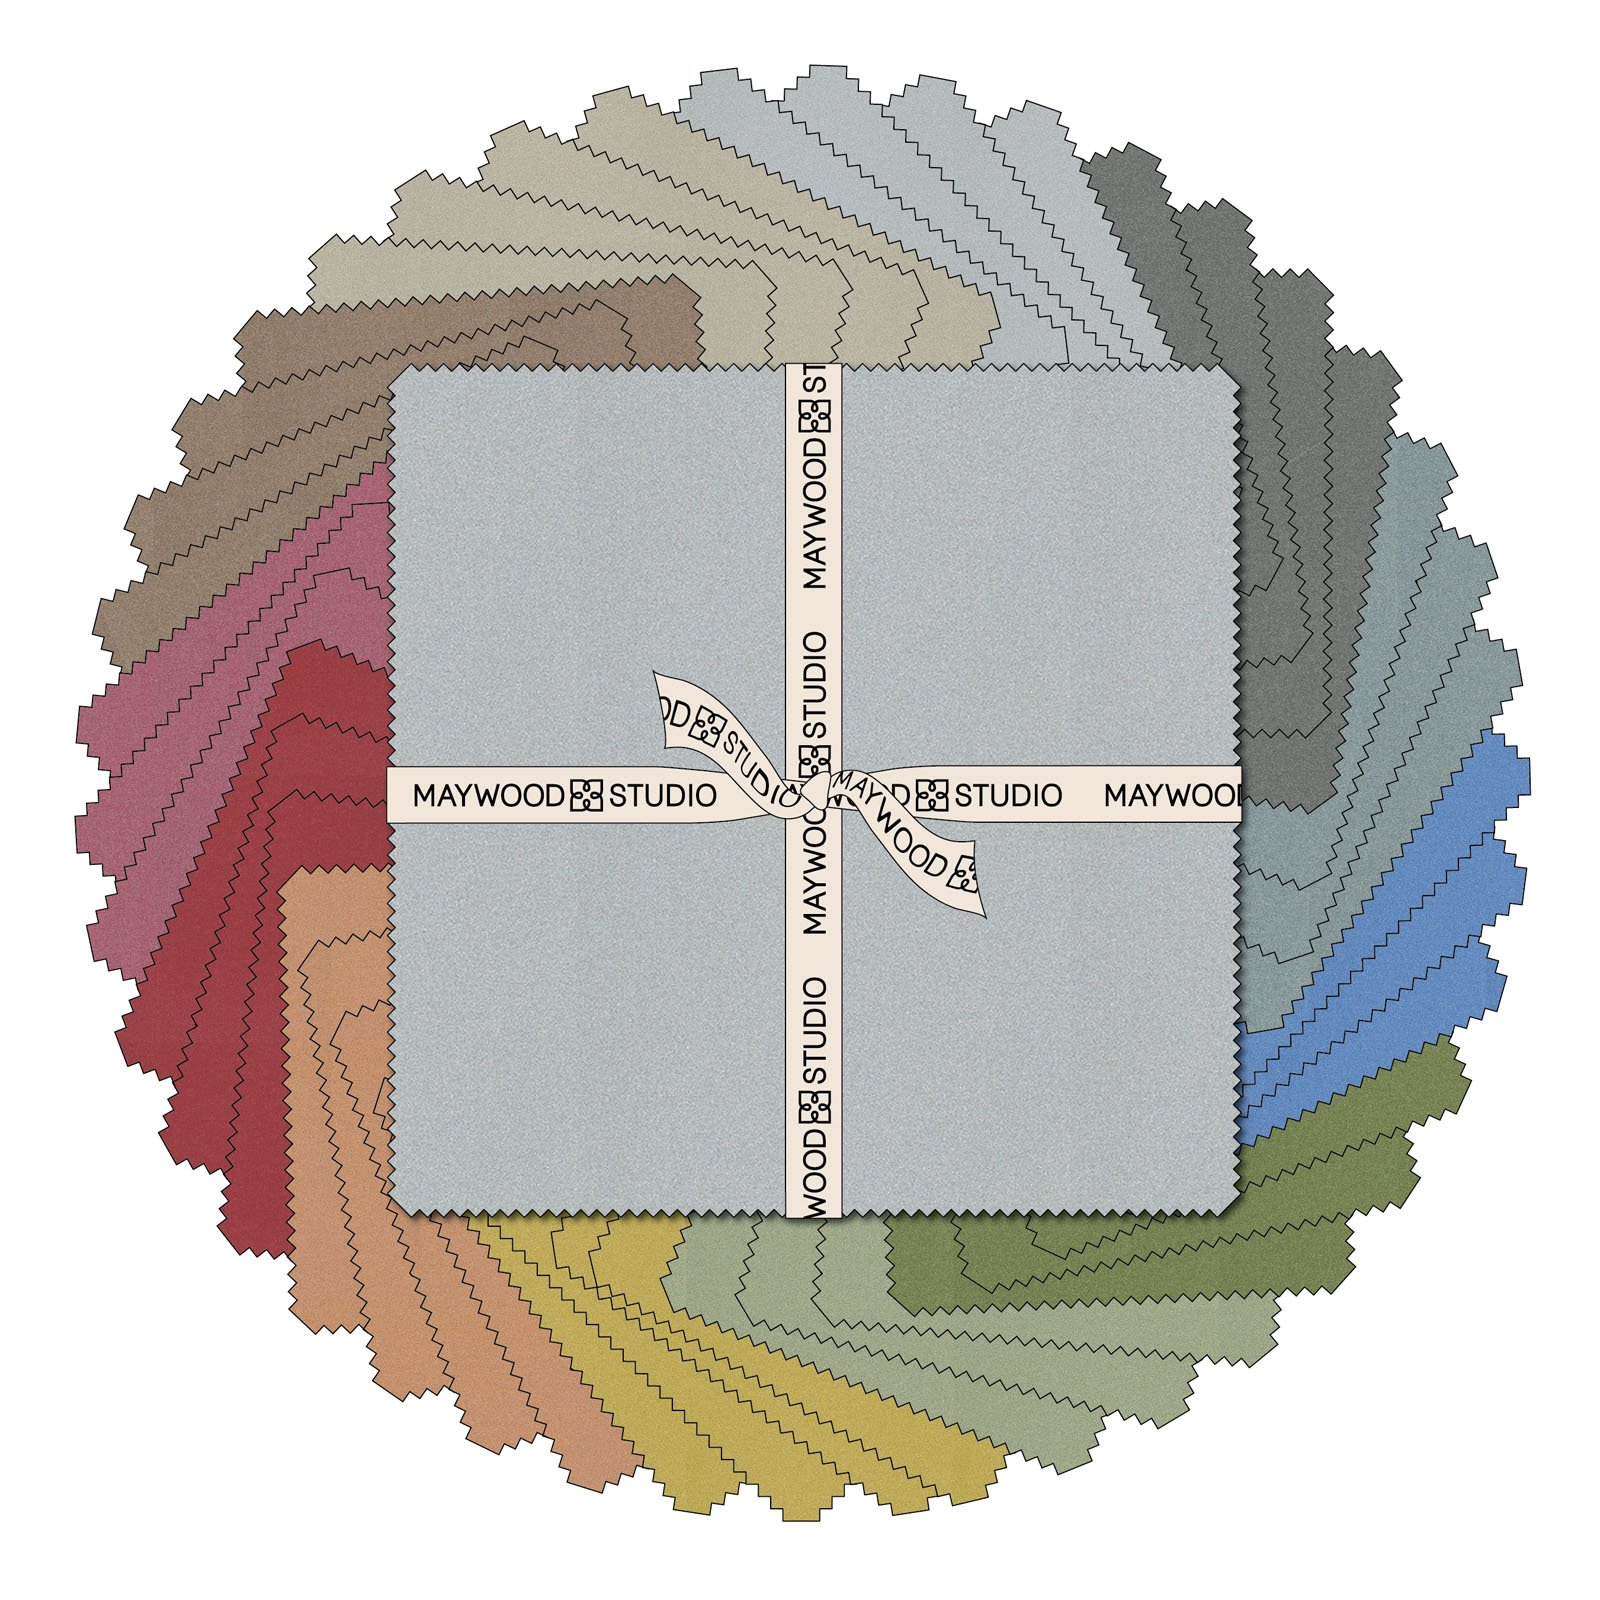 EESC-SQMASSTM - STARLIGHT METALLICS 10 SQUARES (42PC) - AVAILABLE TO ORDER